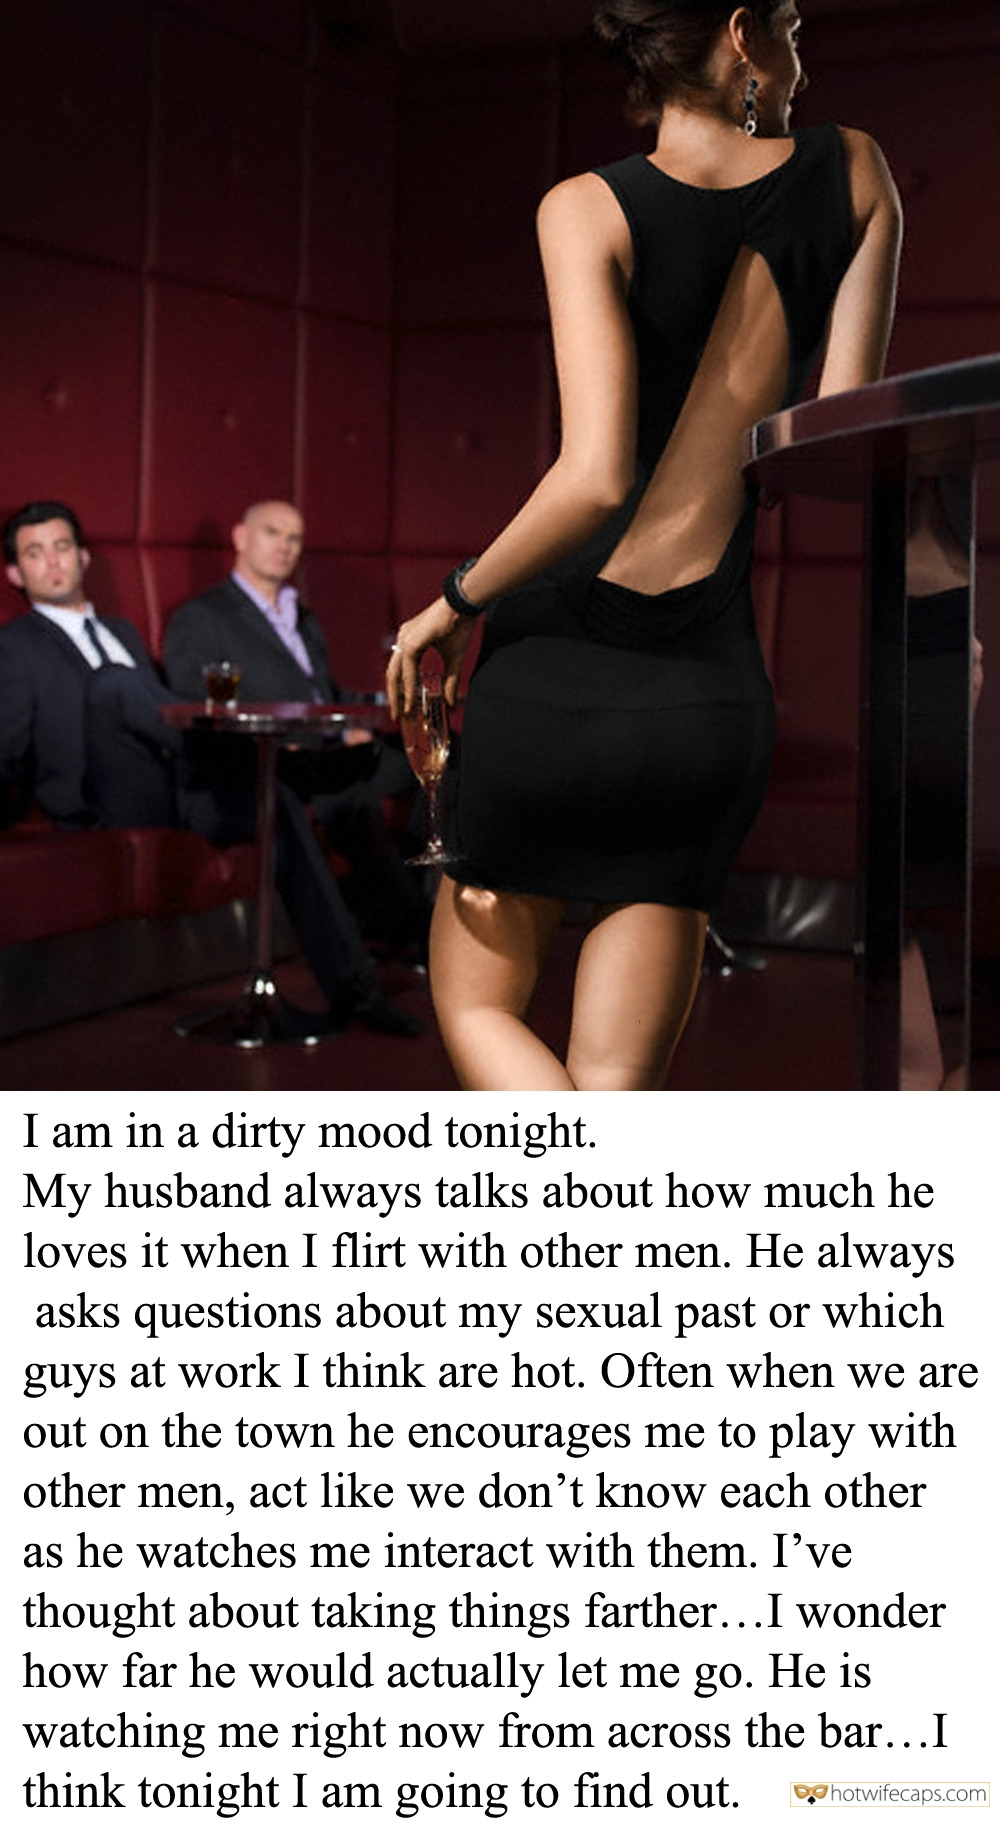 Sexy Memes Cuckold Stories hotwife caption: I am in a dirty mood tonight. My husband always talks about how much he loves it when I flirt with other men. He always asks questions about my sexual past or which guys at work I think are hot....